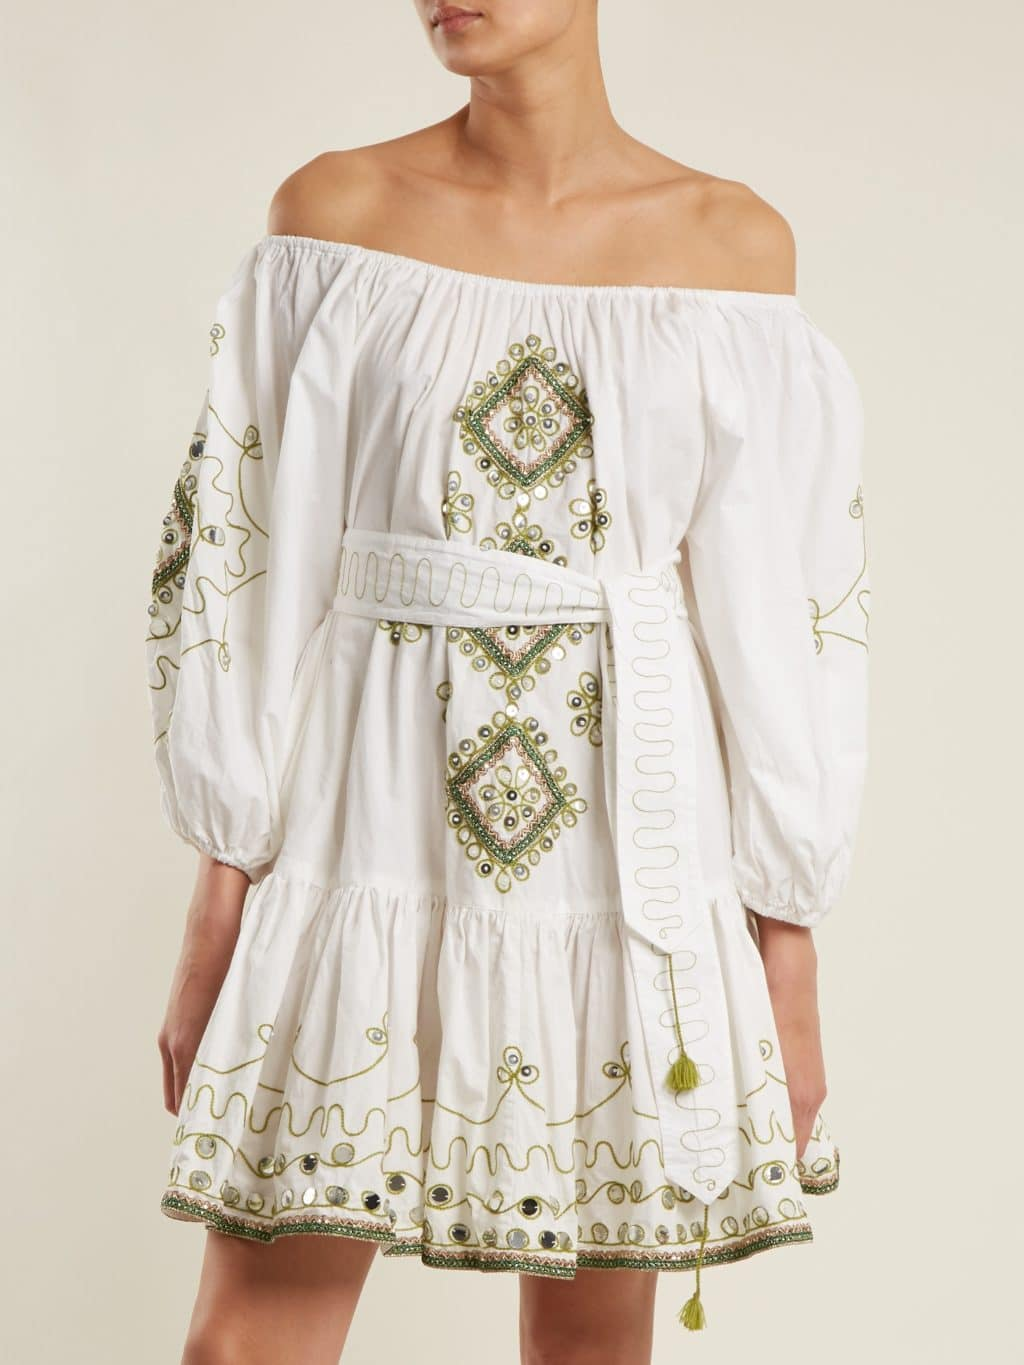 24cca1e0 JULIET DUNN Sequin-embellished Embroidered Cotton White Dress - We ...